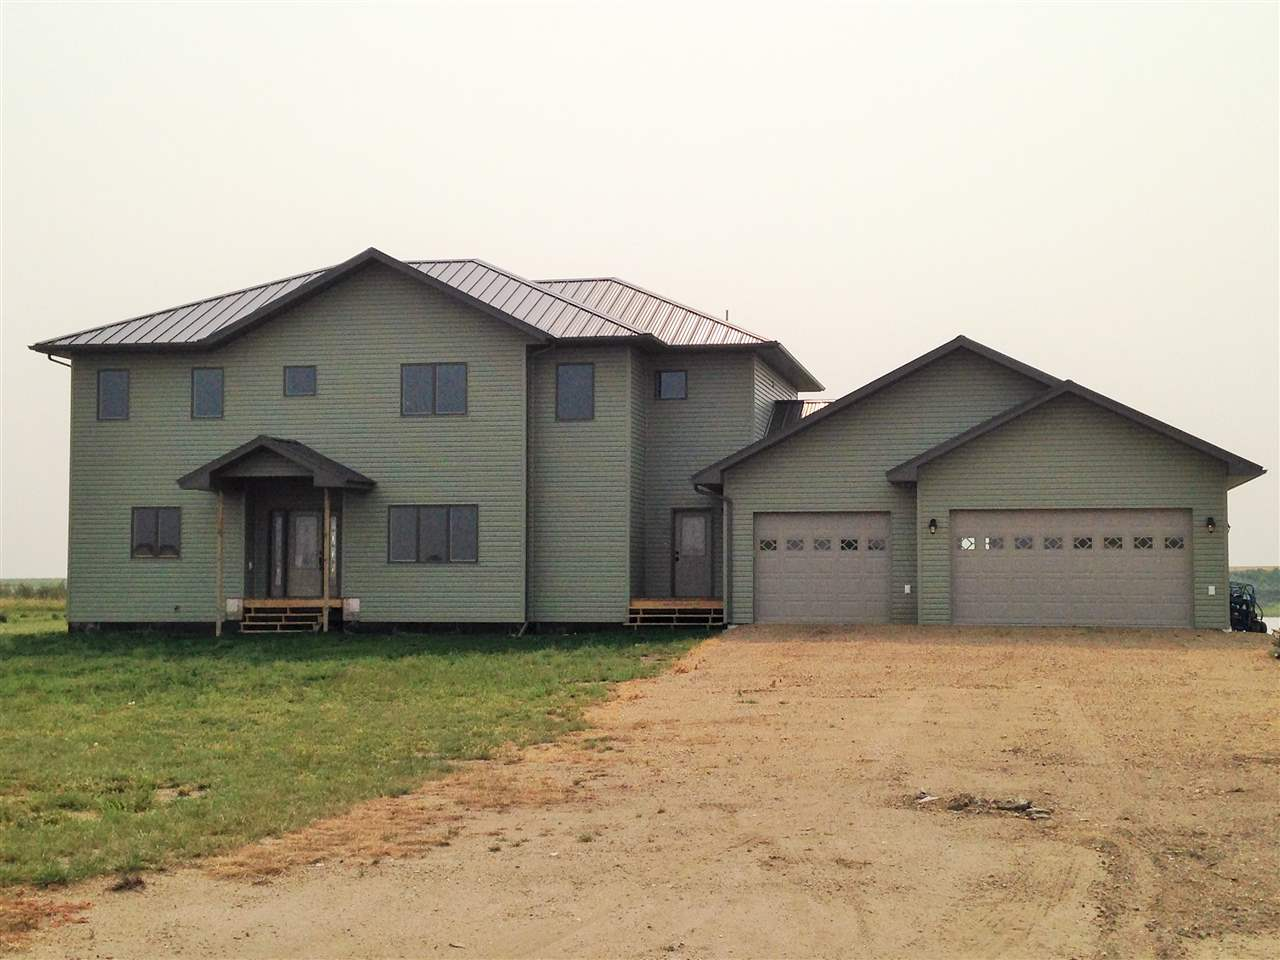 5106 Zekes Way, Garrison, ND 58540